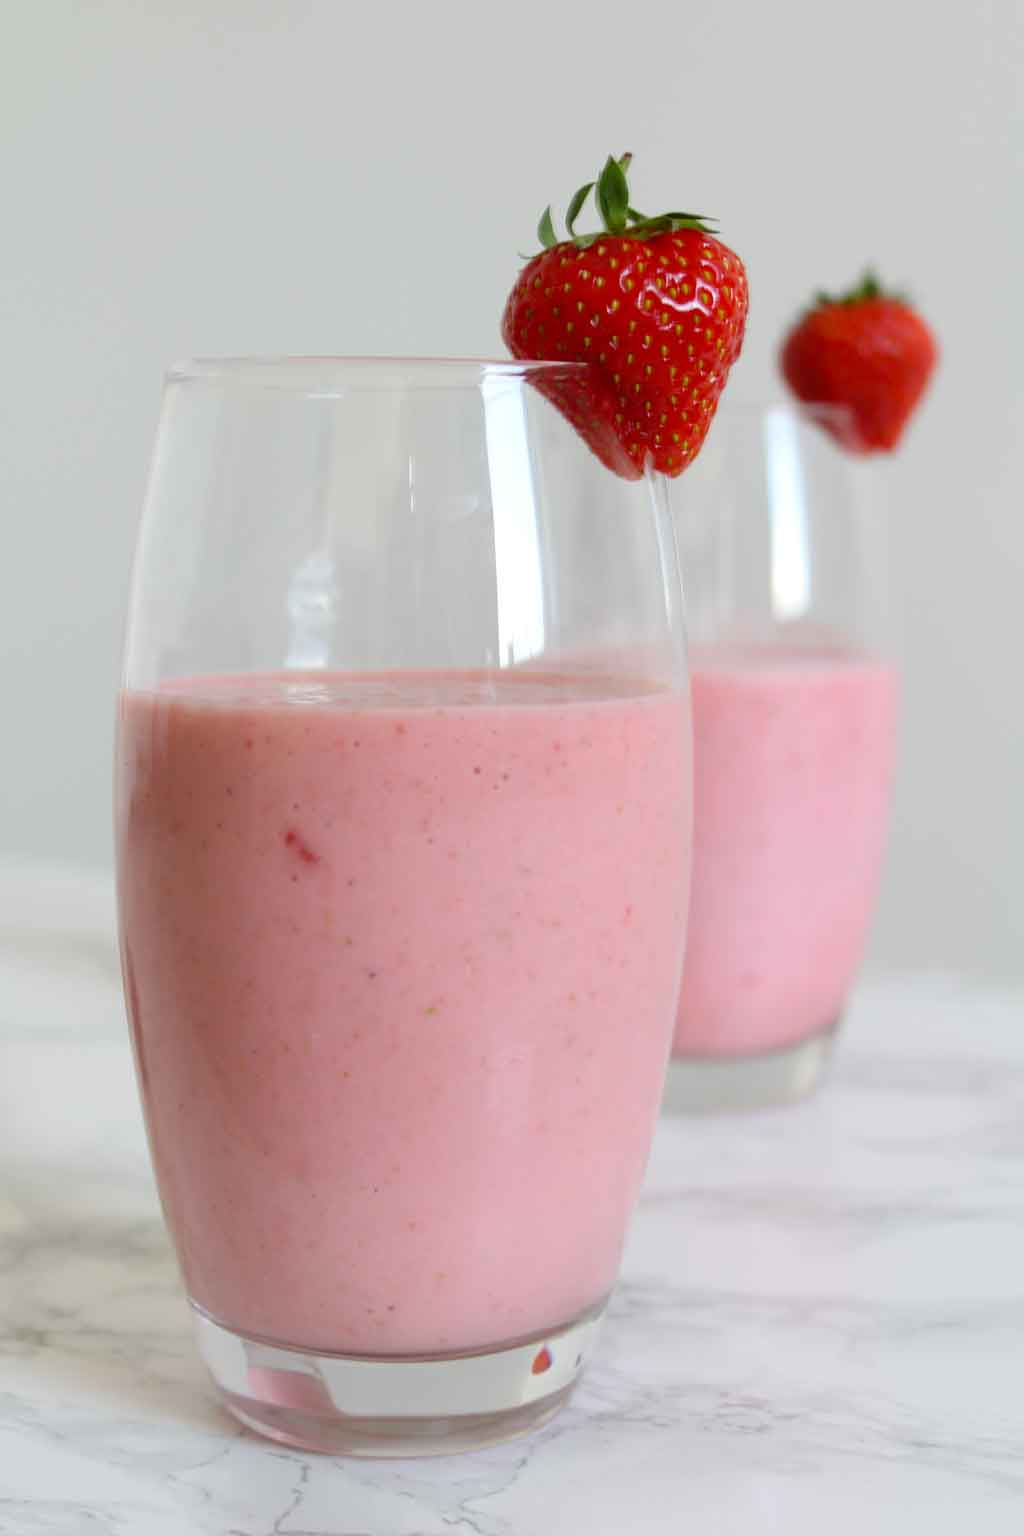 Two vegan strawberry milkshakes in glasses